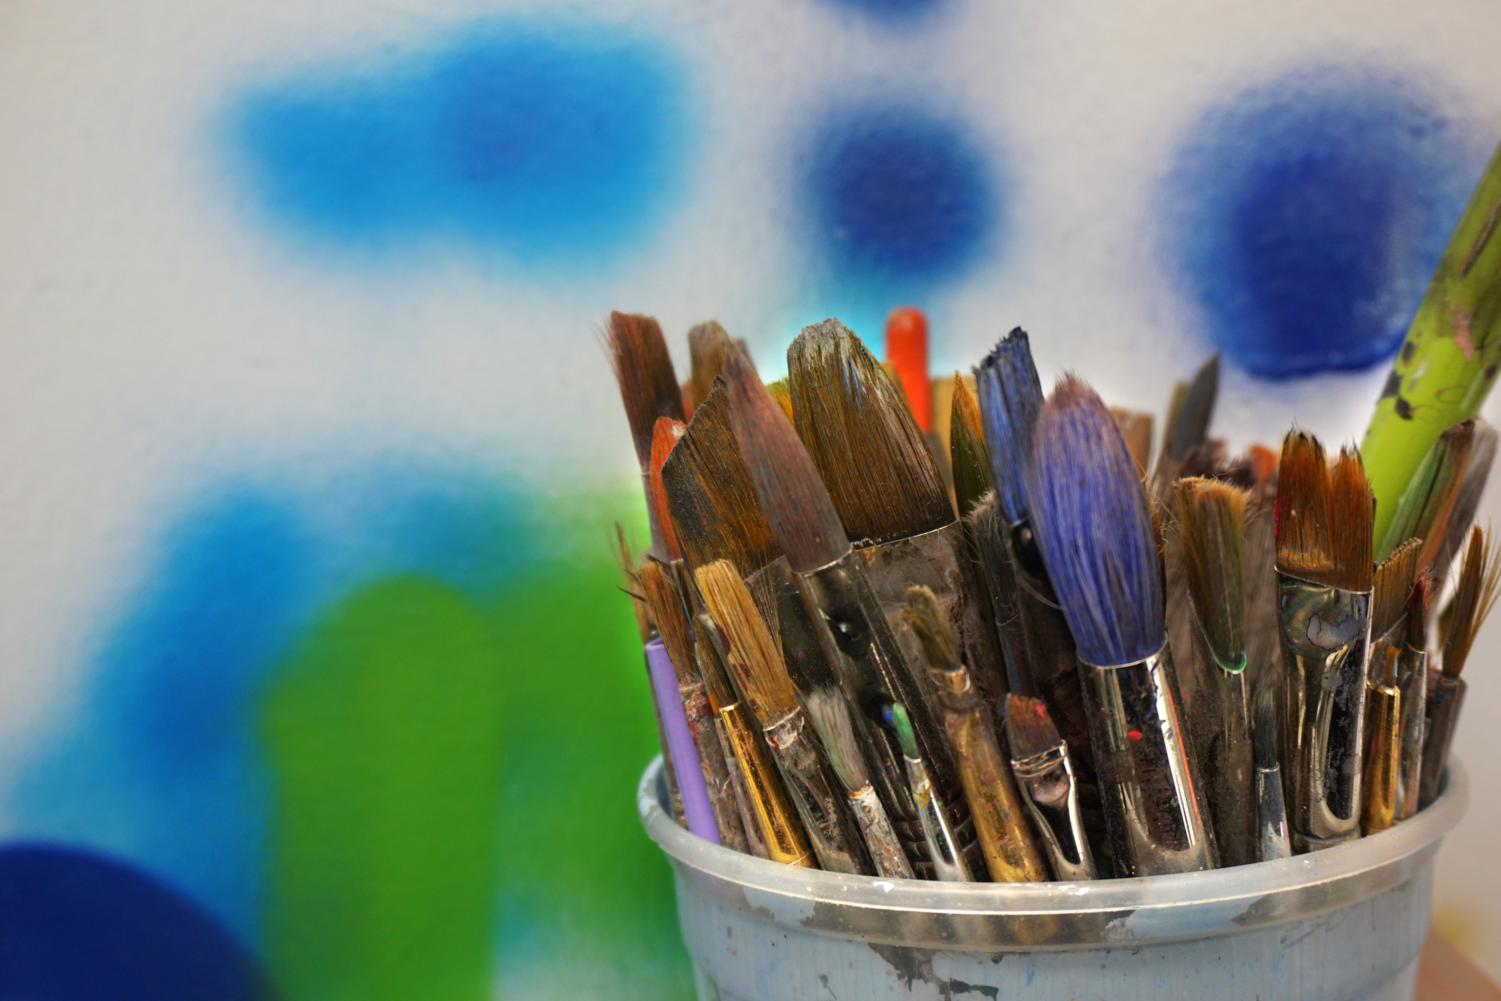 Painting, drawing or sculpture - artists have their favorite sources.